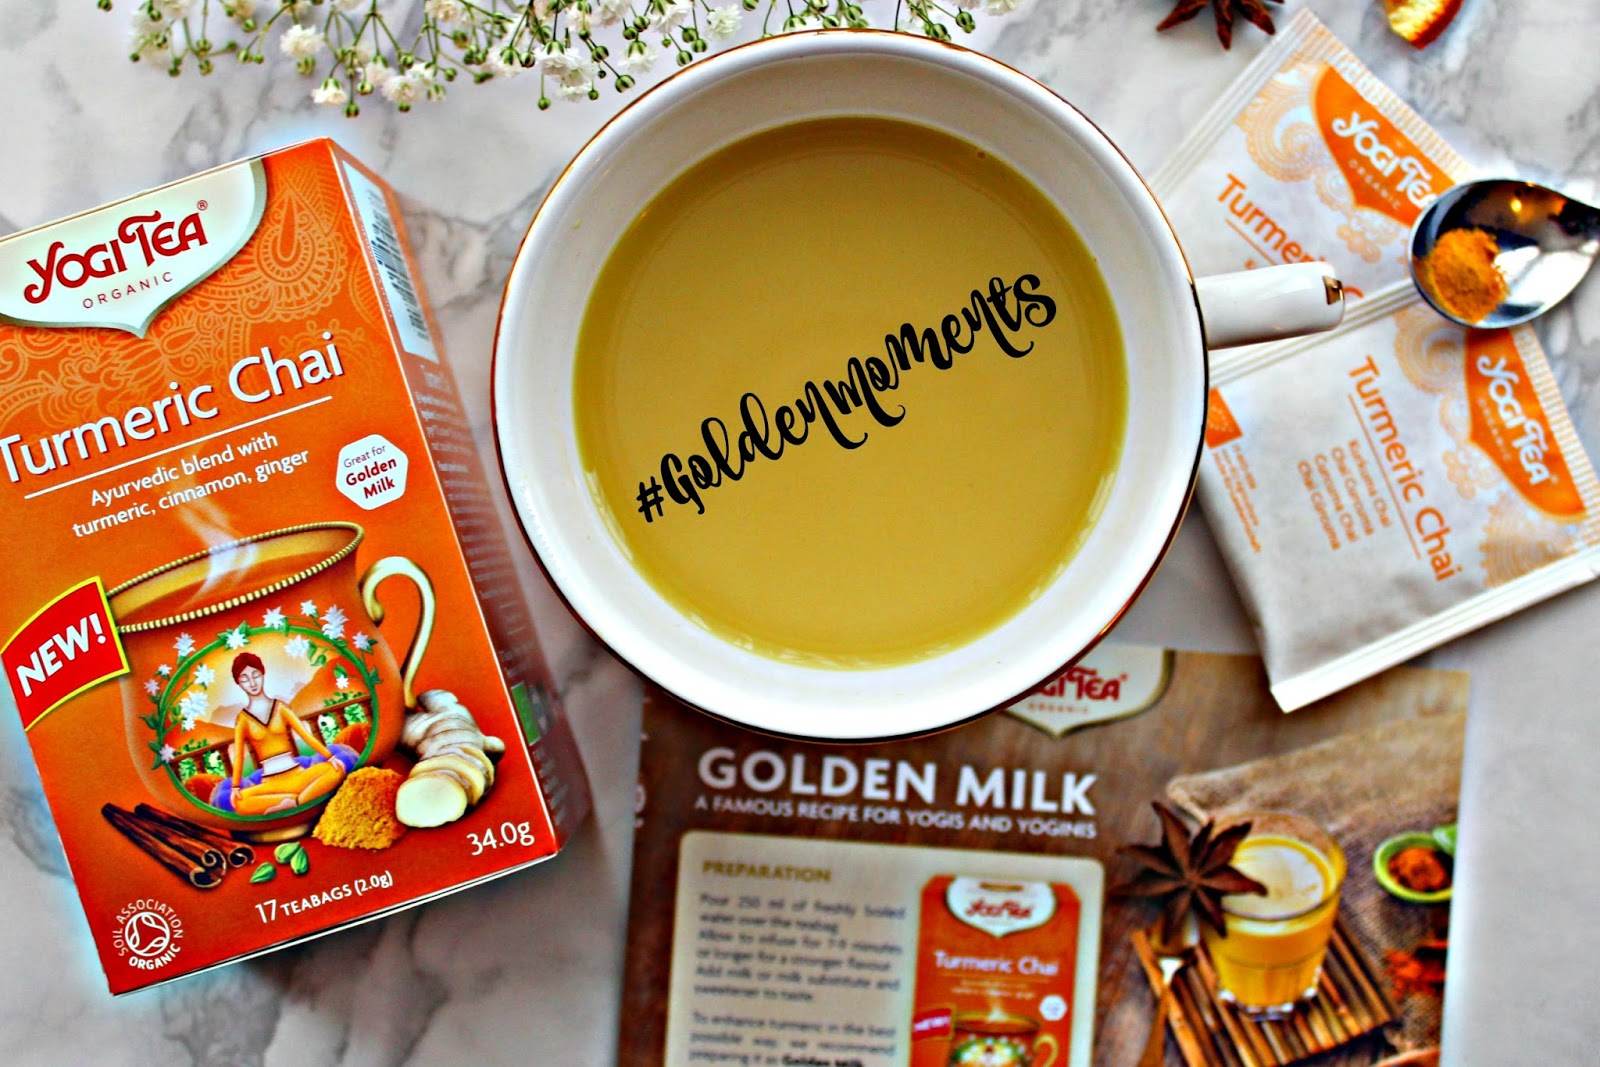 New in: Yogi Tea Turmeric Chai #GoldenMoments (sponsored)